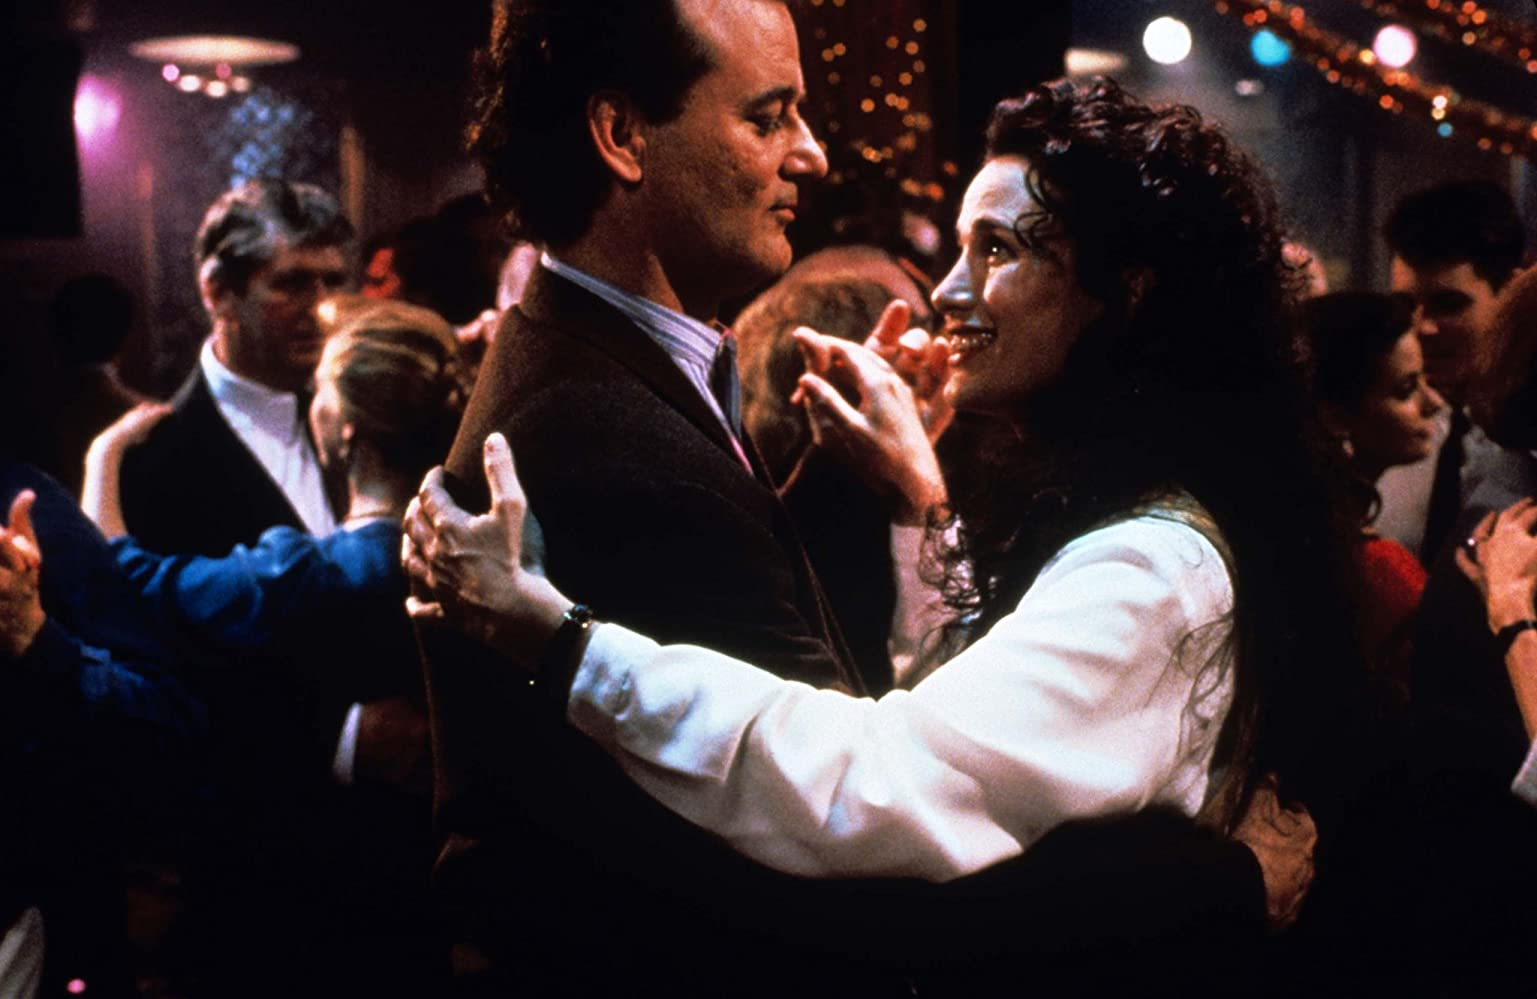 The film Groundhog Day (1993). Actors Bill Murray, Andy McDowell